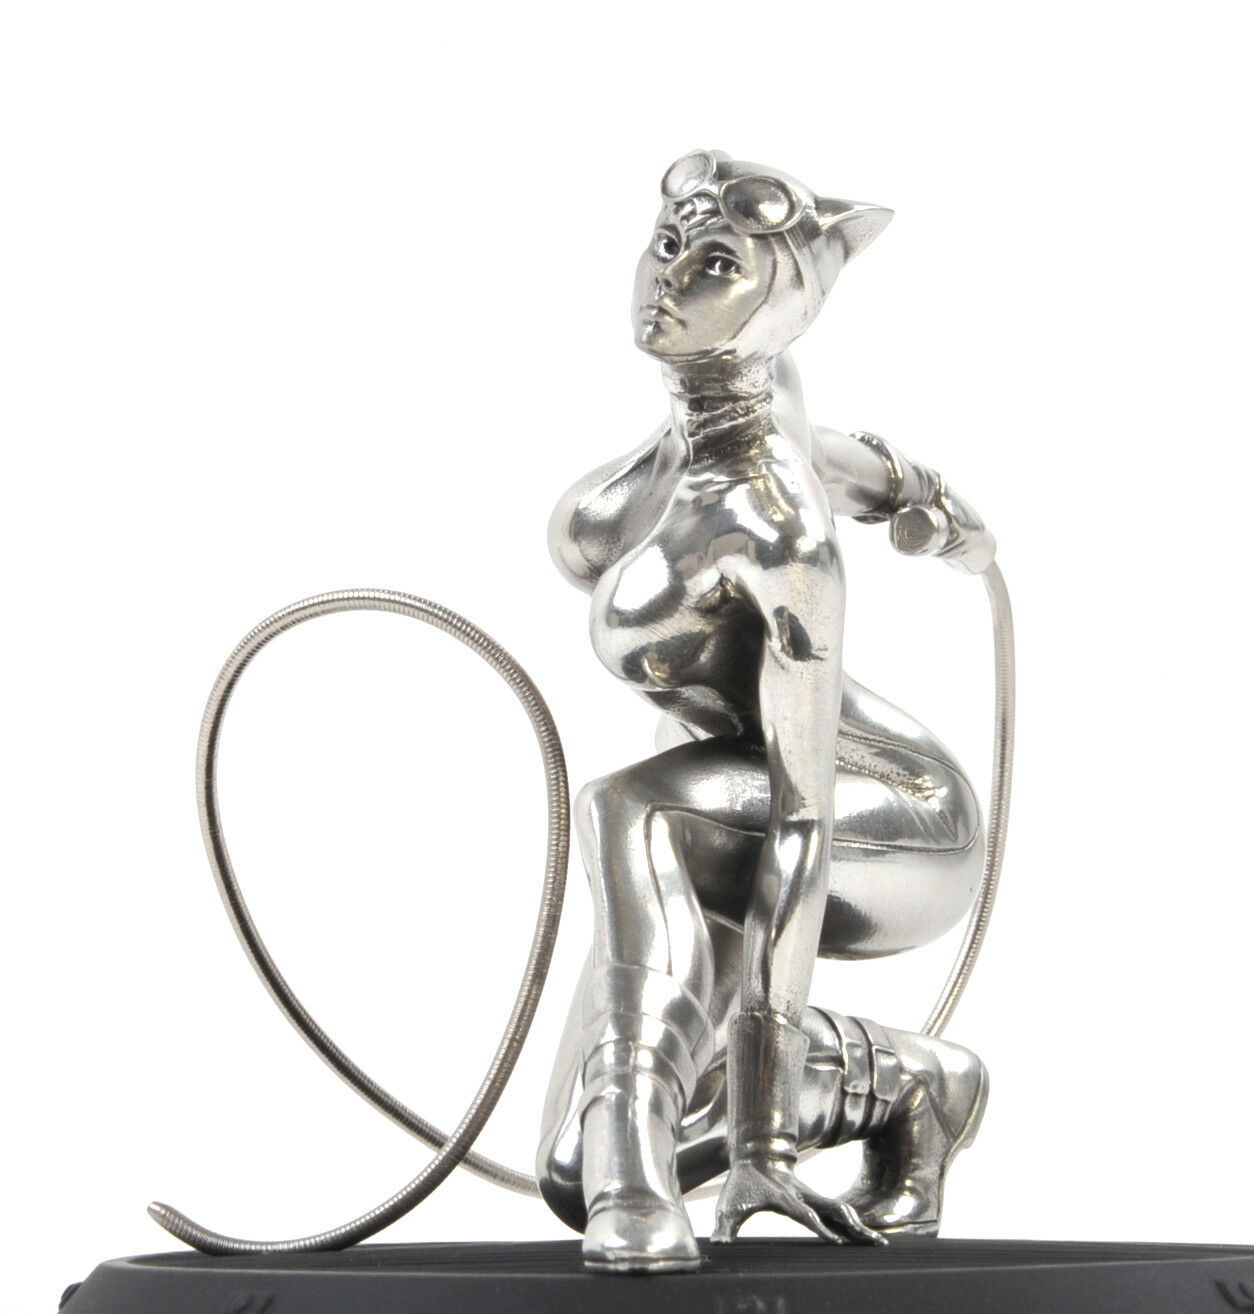 Catwoman DC Comics Figurine - Sculpture by Royal Selangor